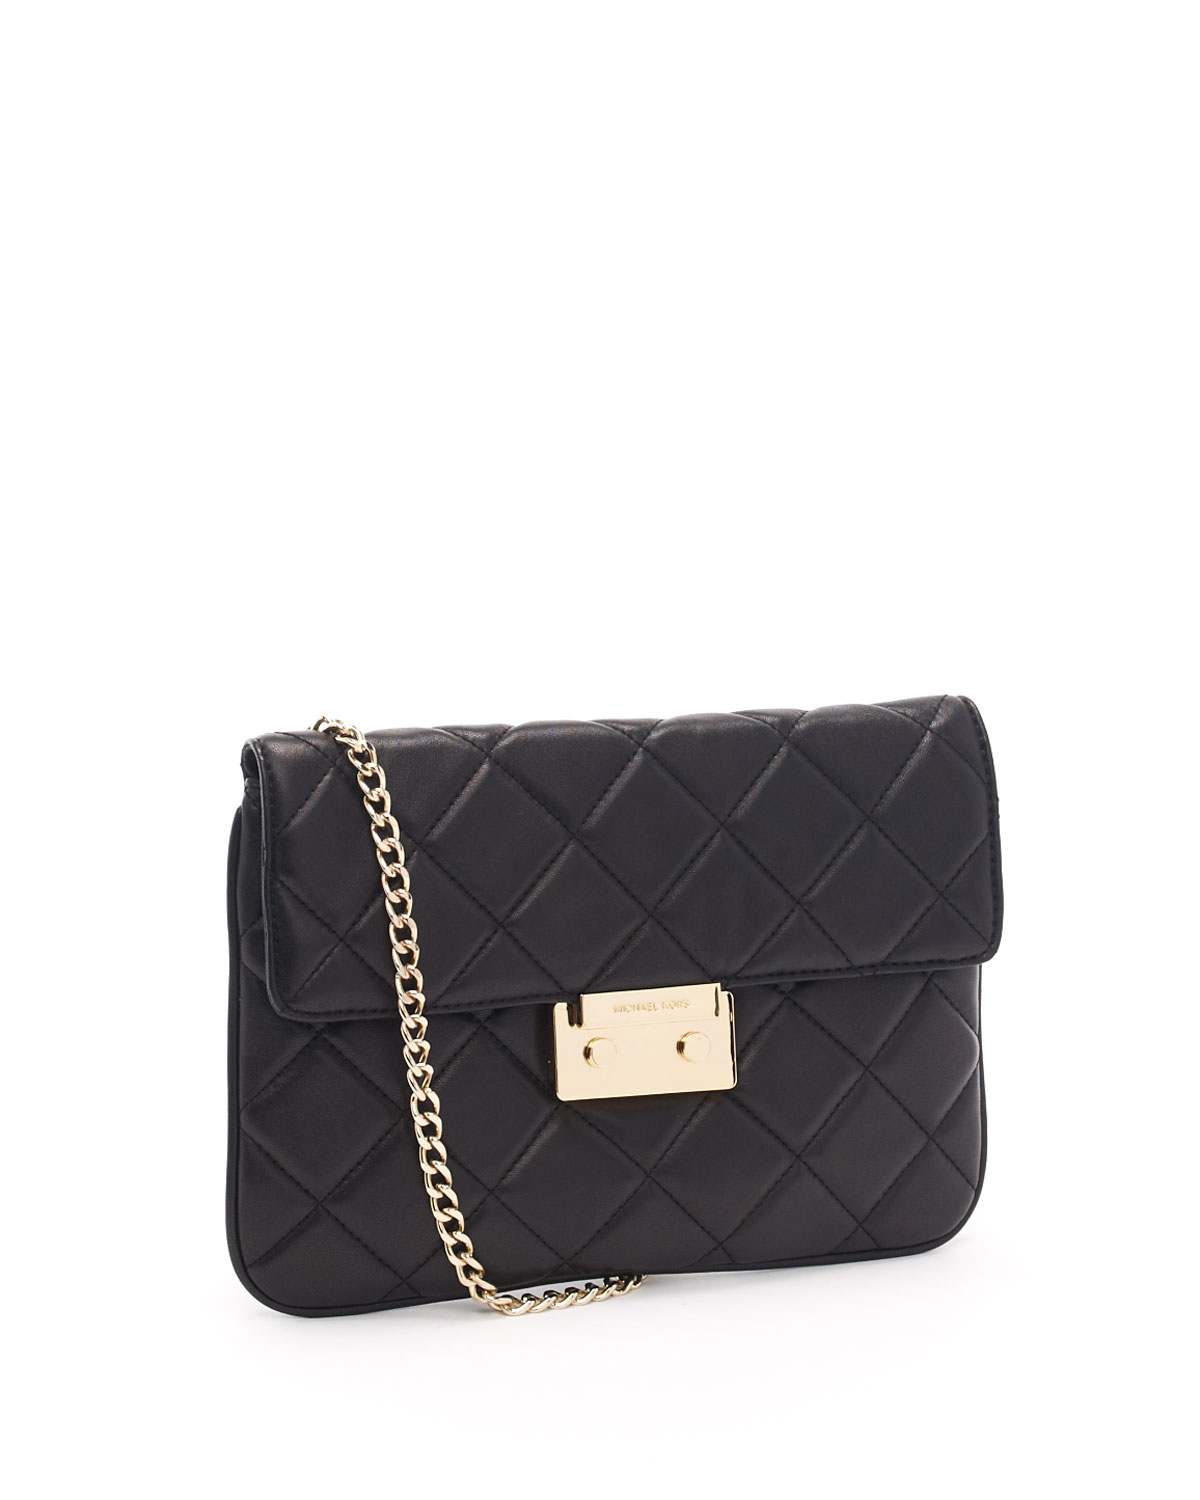 Michael Kors Sloan Quilted Clutch, Black